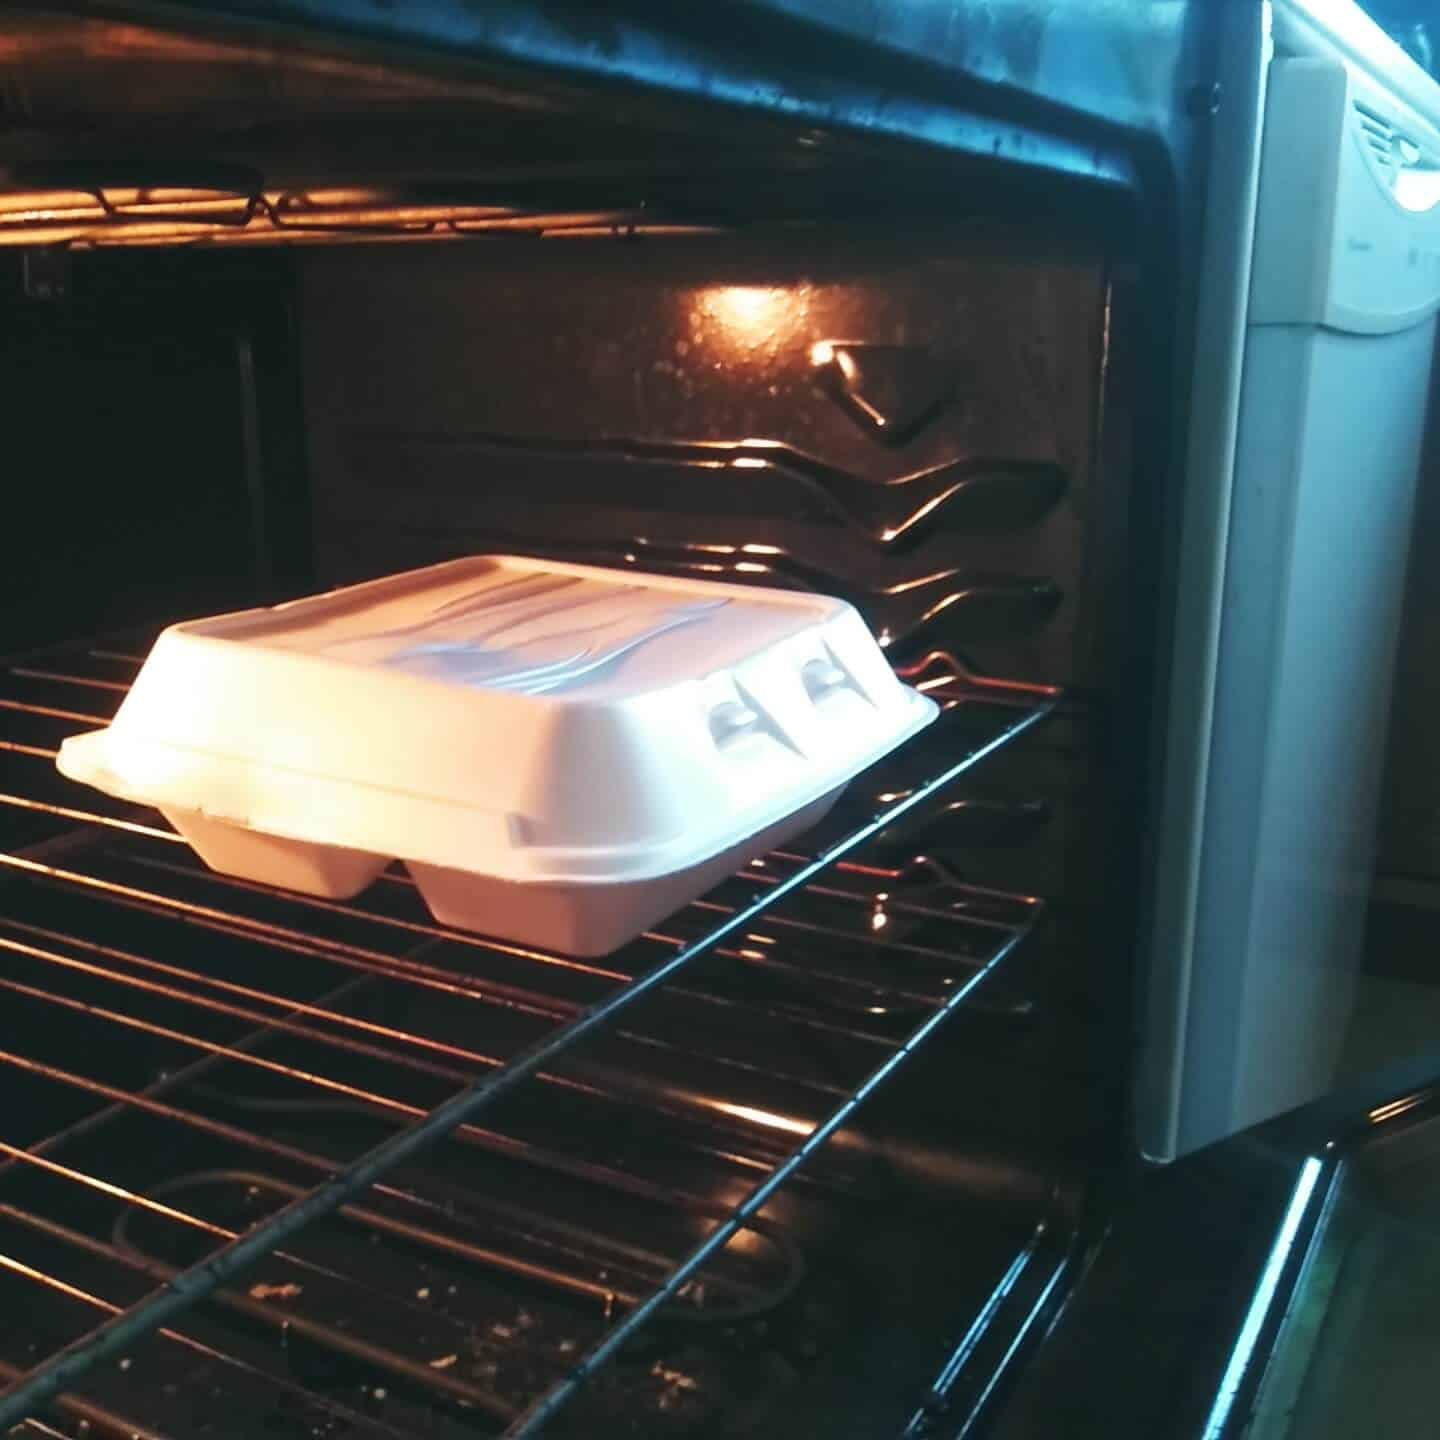 Styrofoam-Container-in-the-Oven